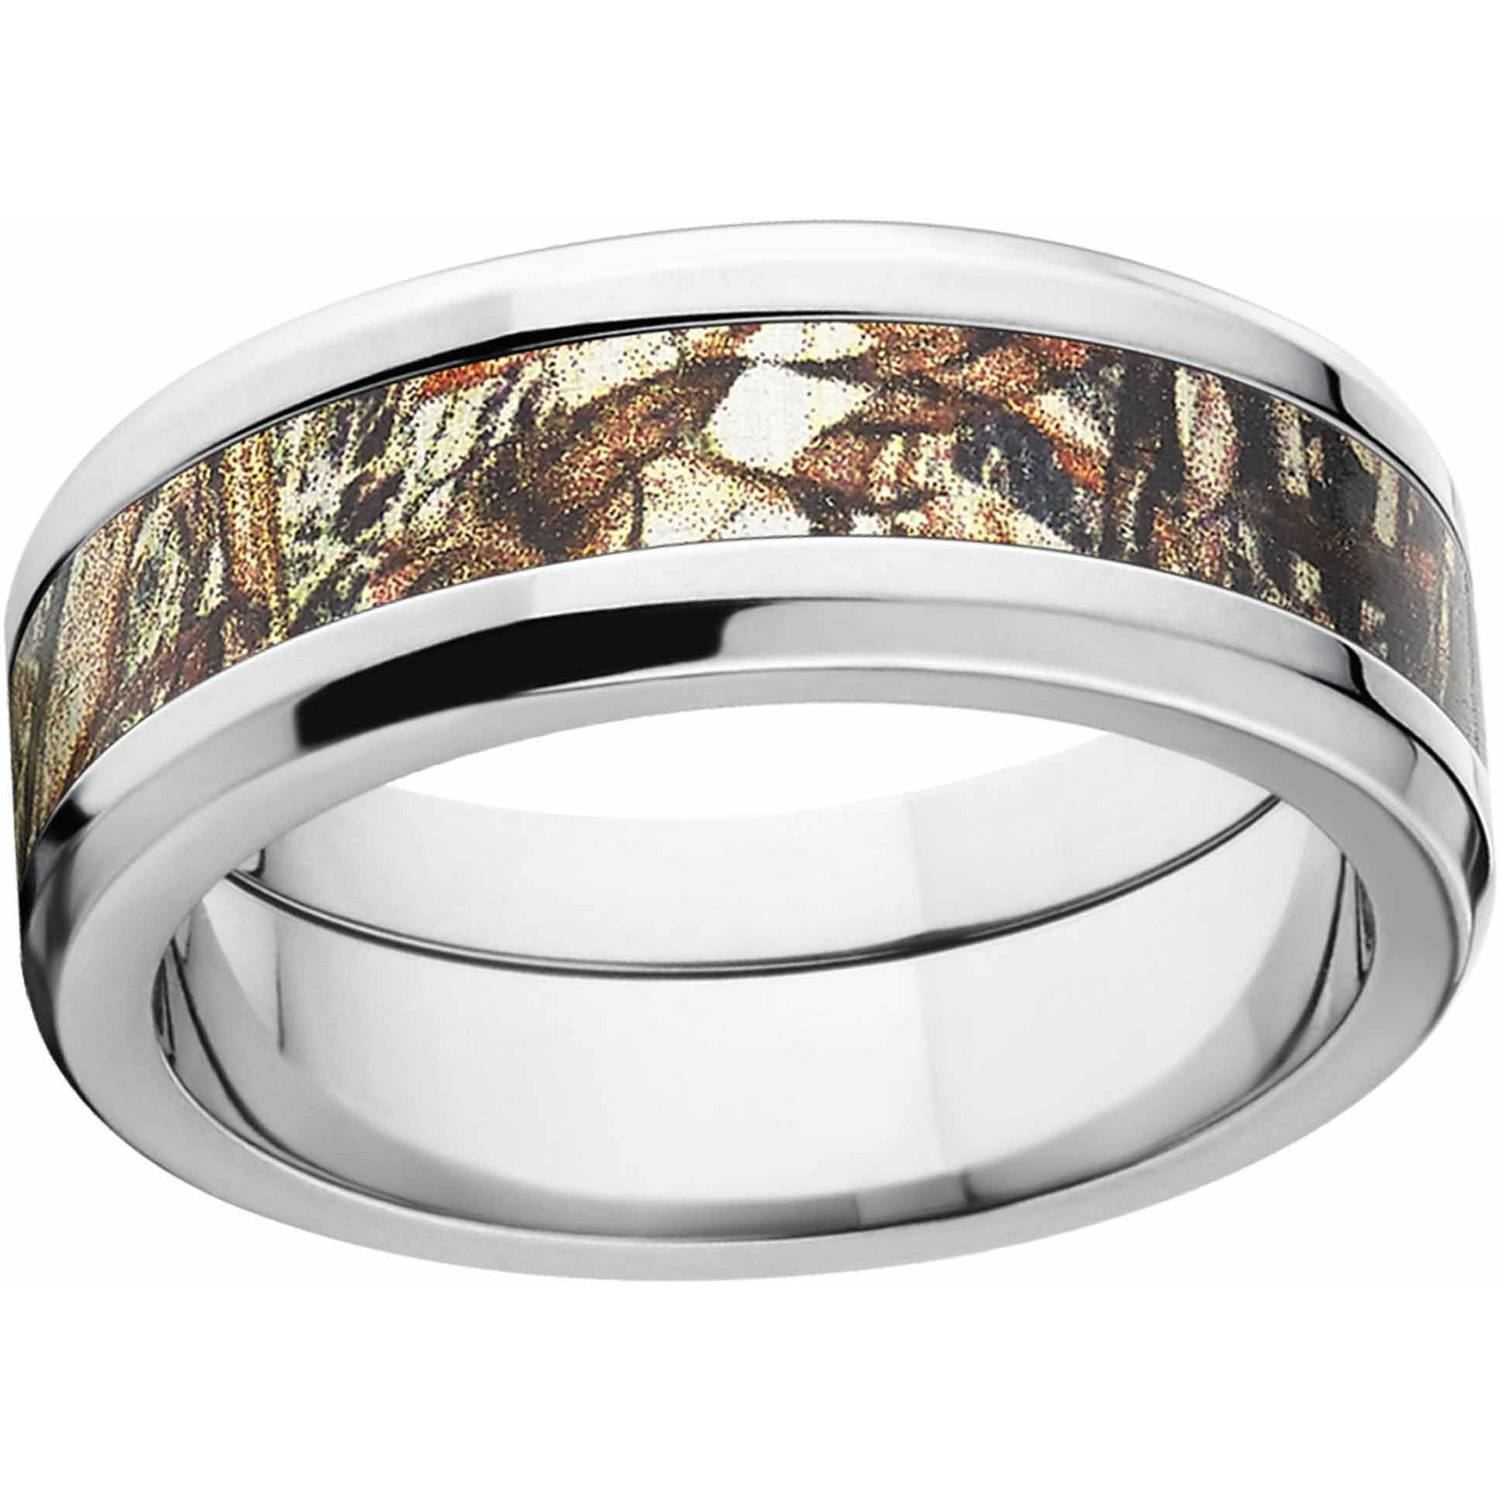 Mossy Oak Duckblind Men's Camo 8mm Stainless Steel Wedding Band with Polished Edges and Deluxe Comfort Fit